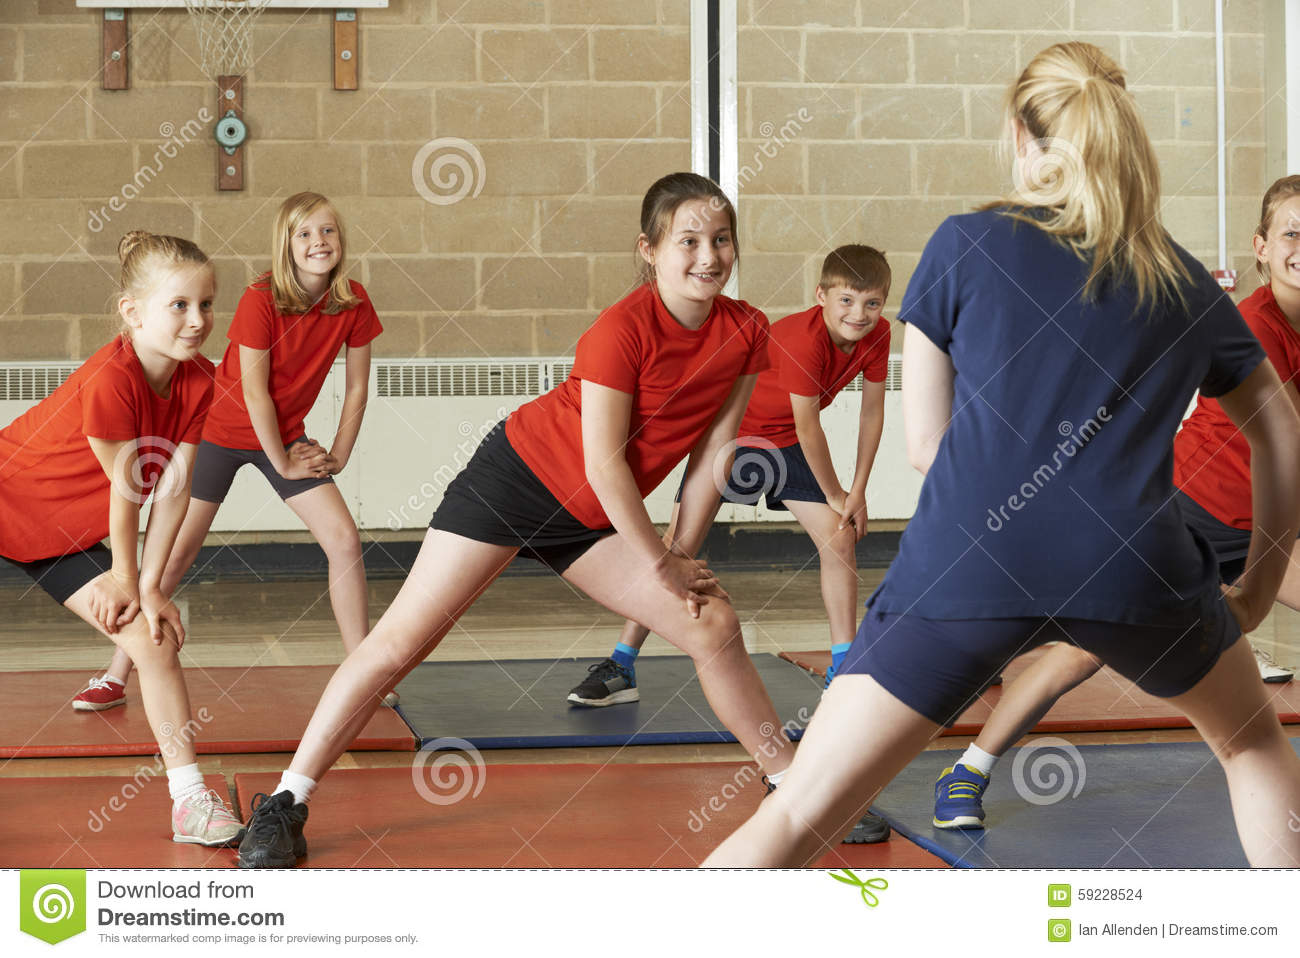 Profesor Taking Exercise Class en gimnasio de la escuela